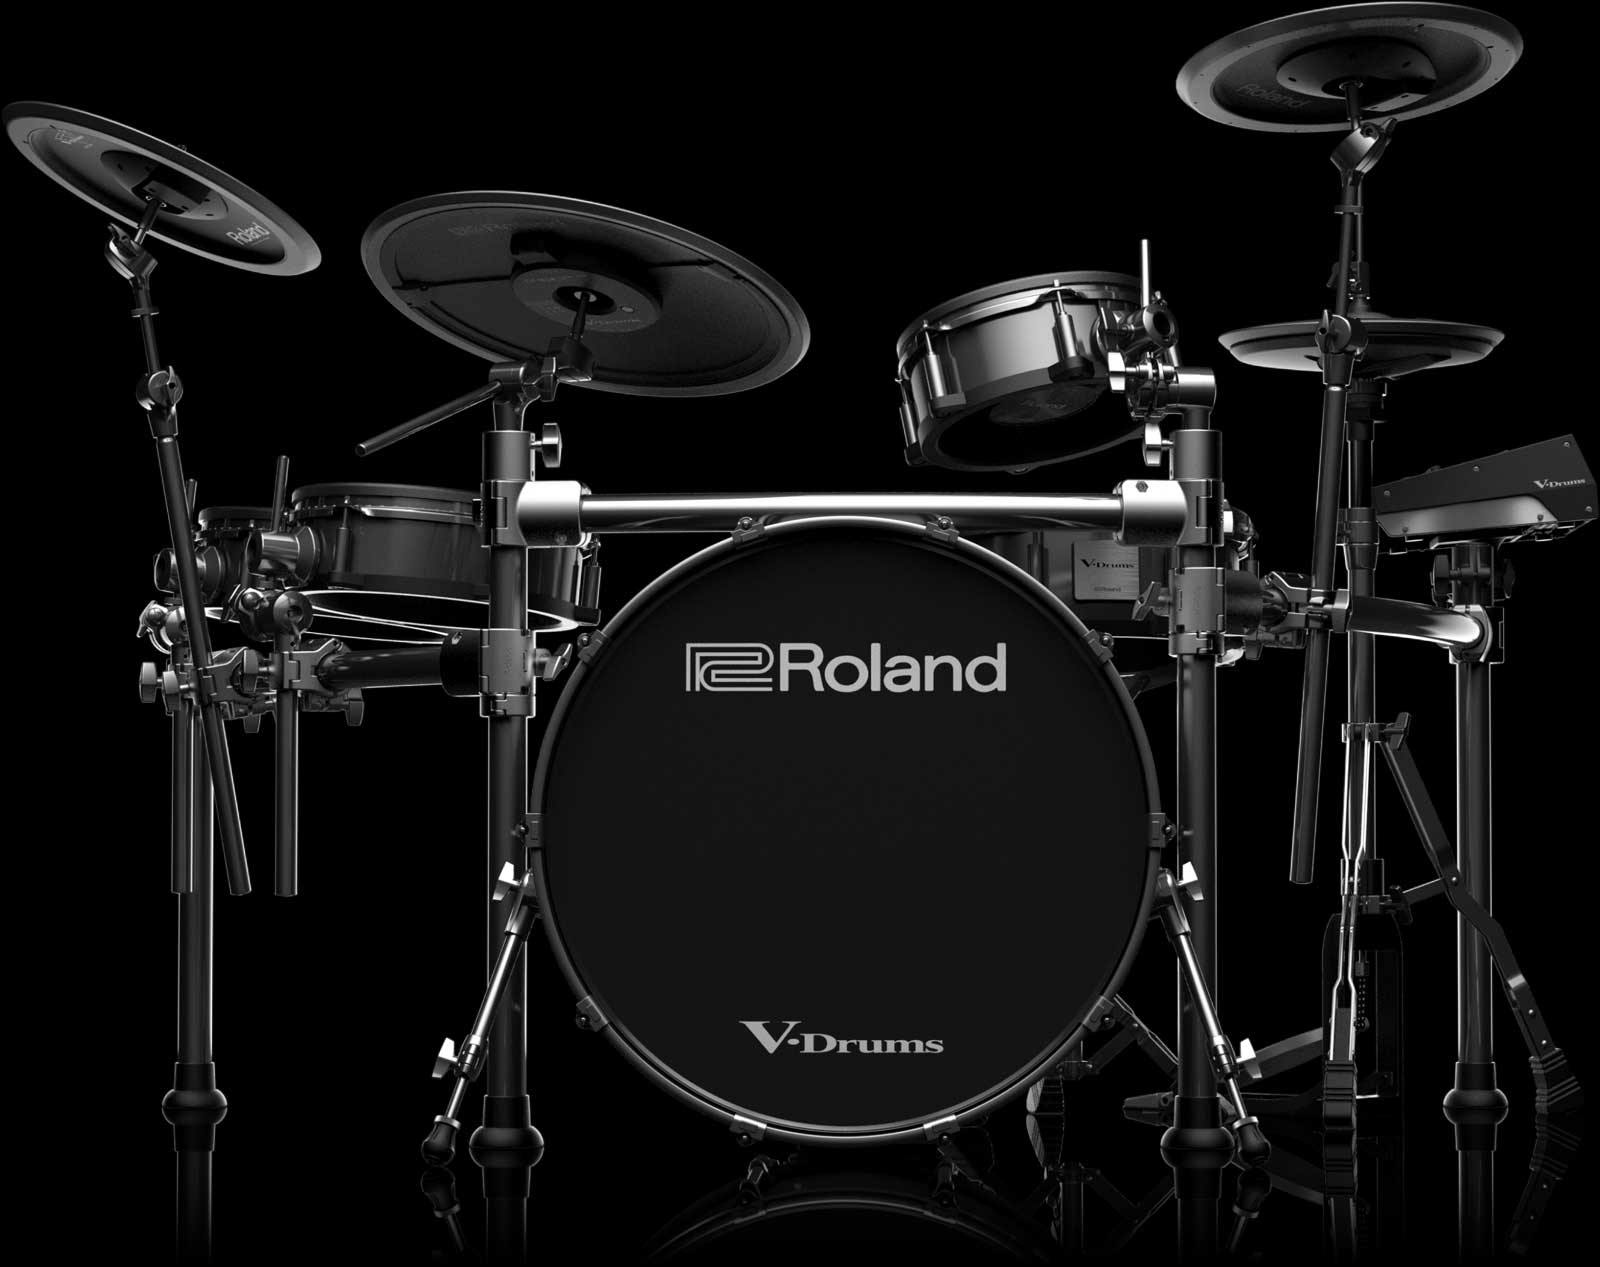 roland td 50kv v drums with kd a22. Black Bedroom Furniture Sets. Home Design Ideas